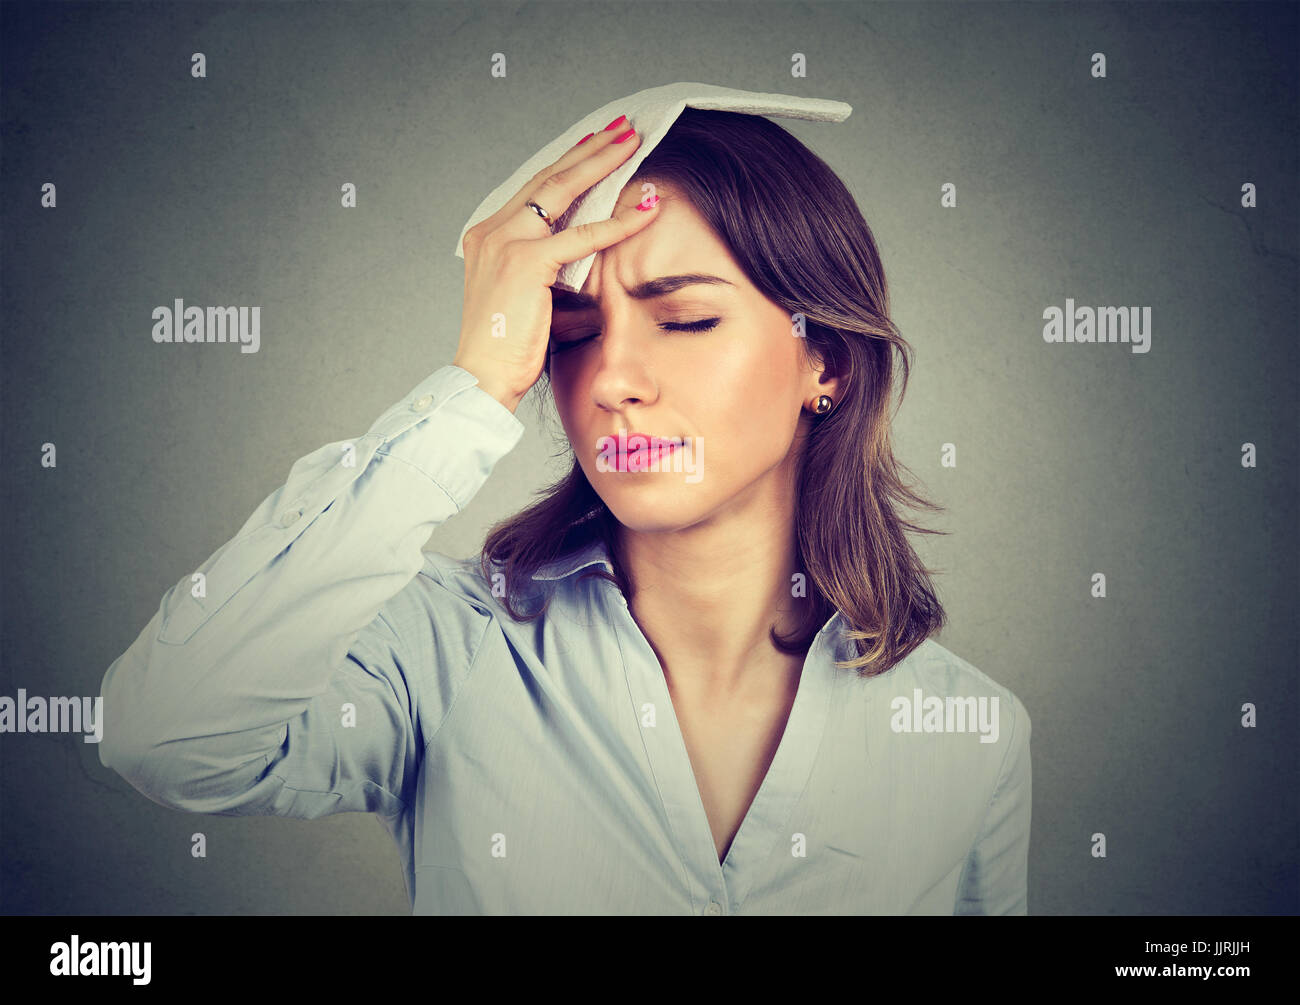 young woman wipes sweat from her forehead with a handkerchief - Stock Image